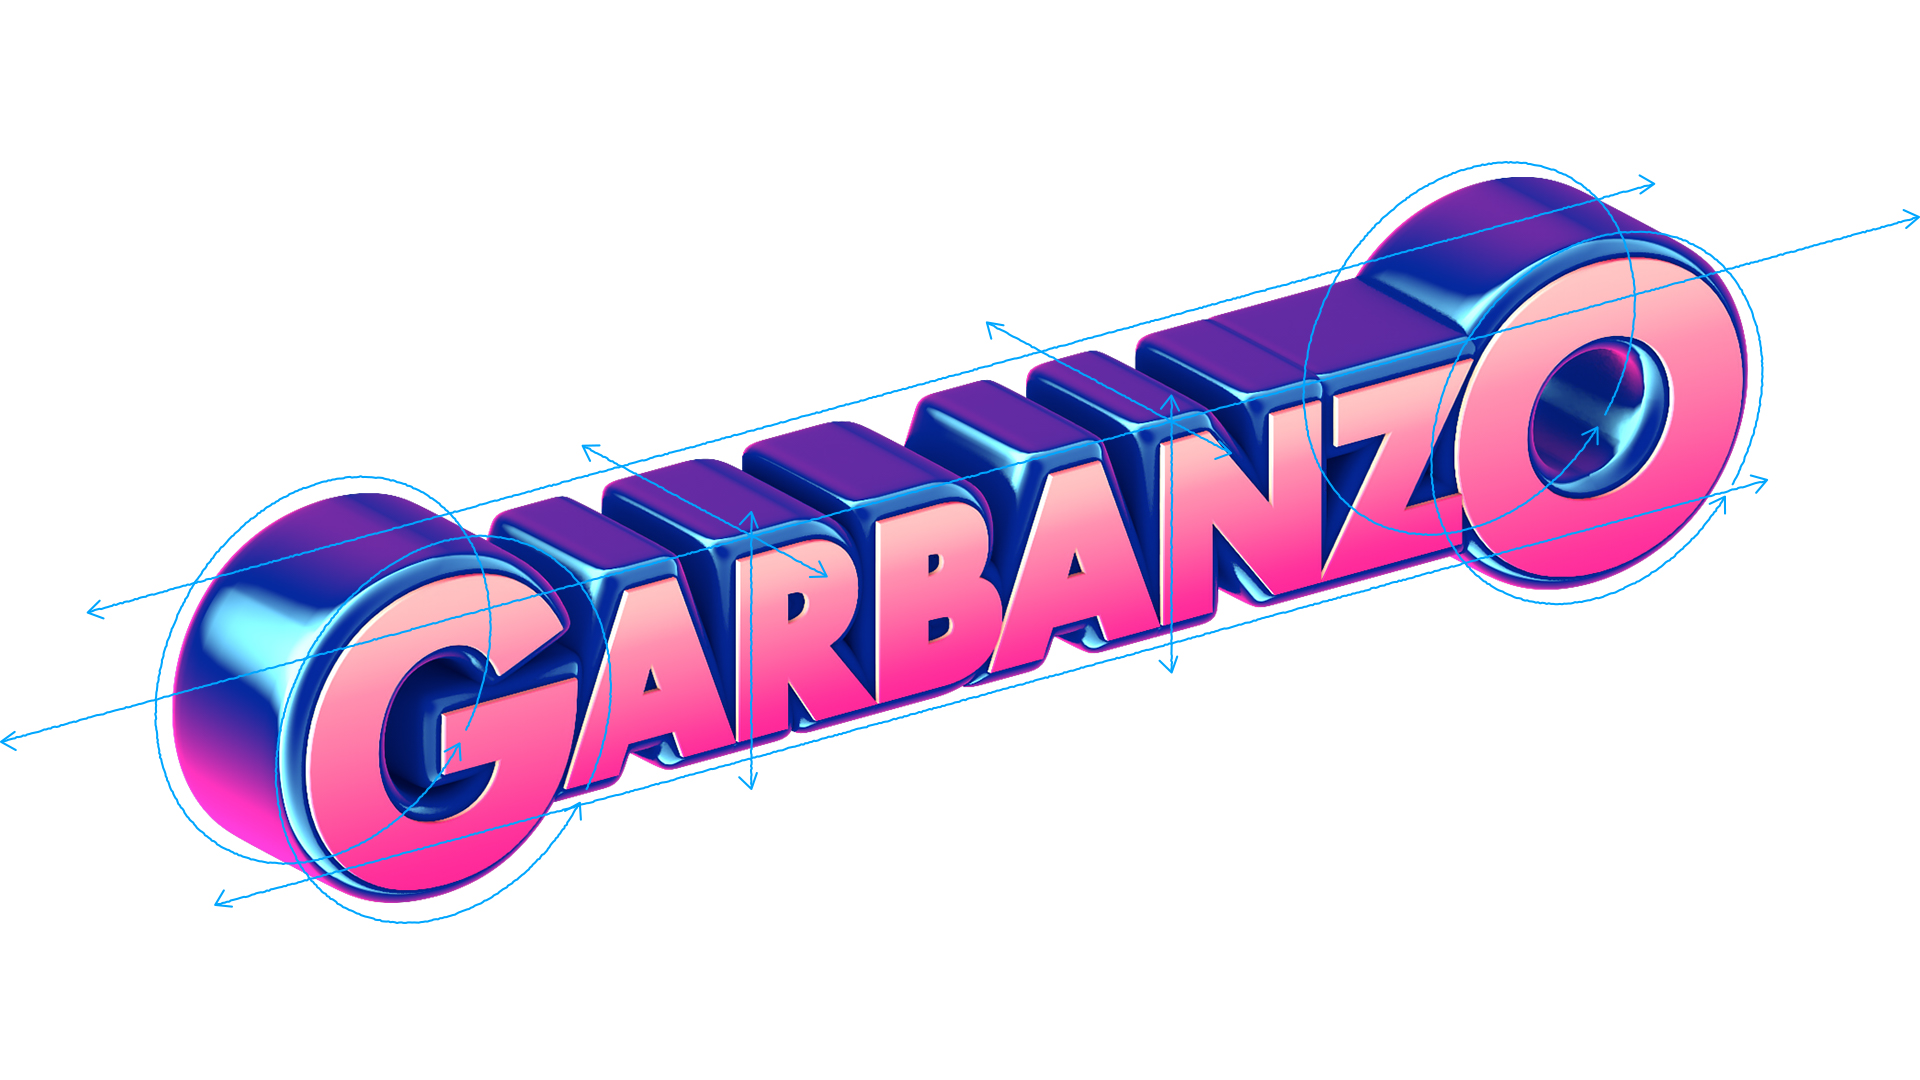 Garbanzo Rebrand 94